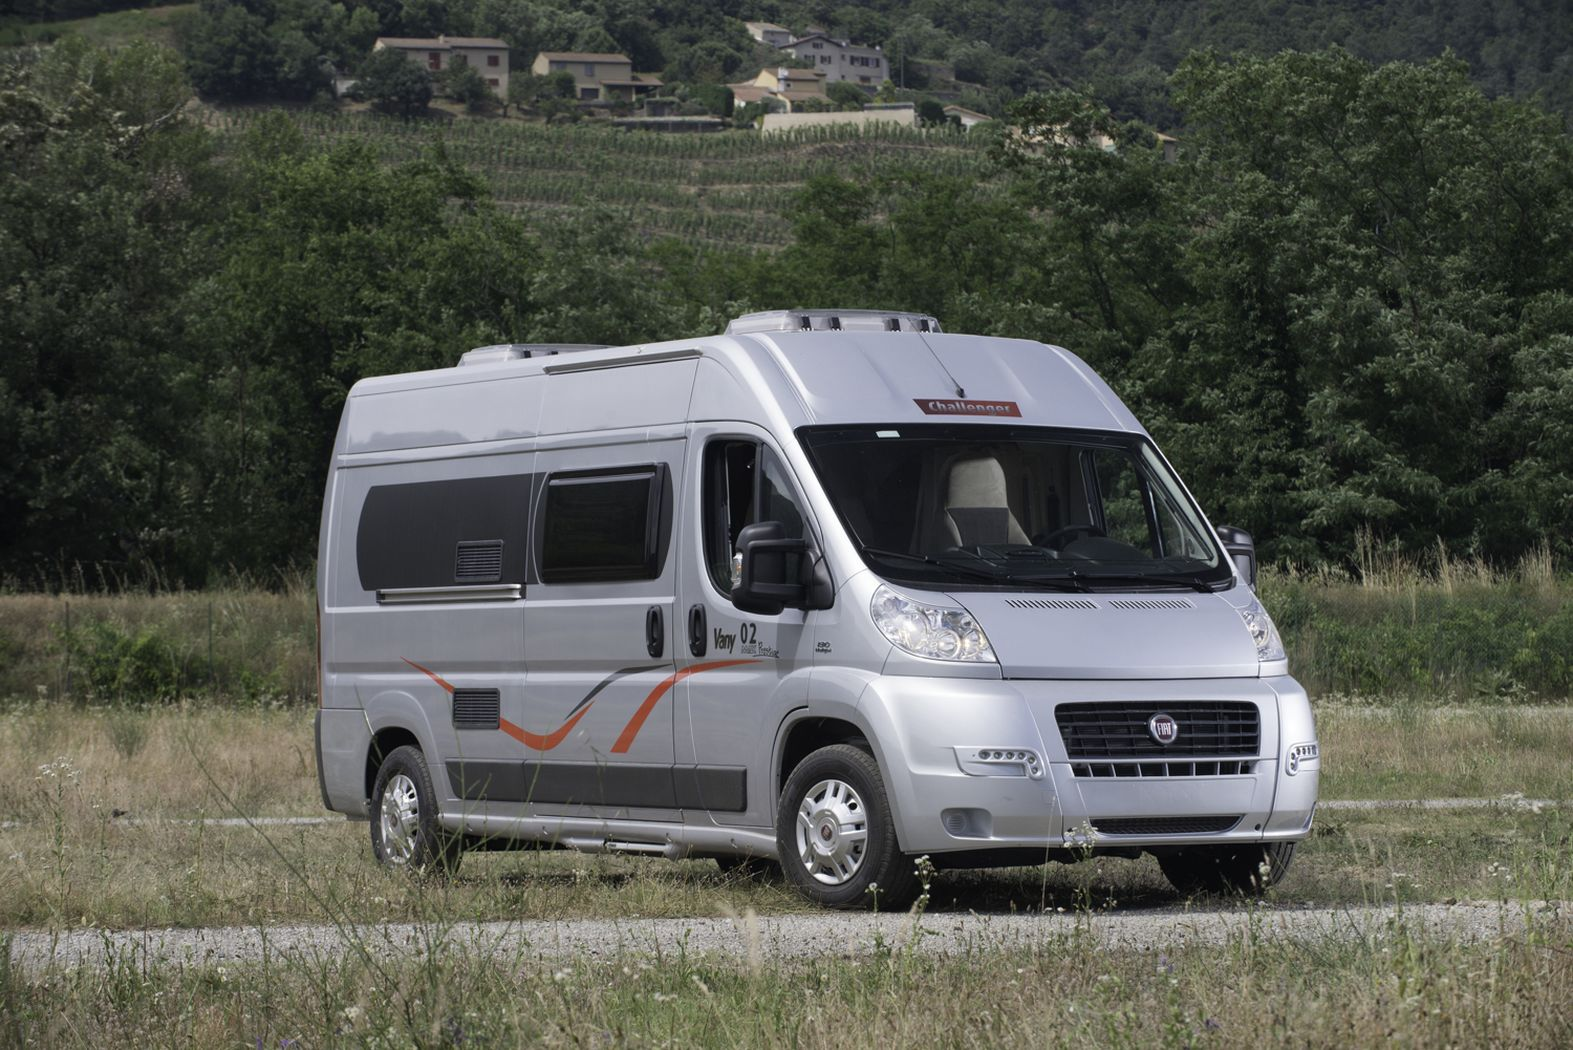 Vente camping car fourgon occasion